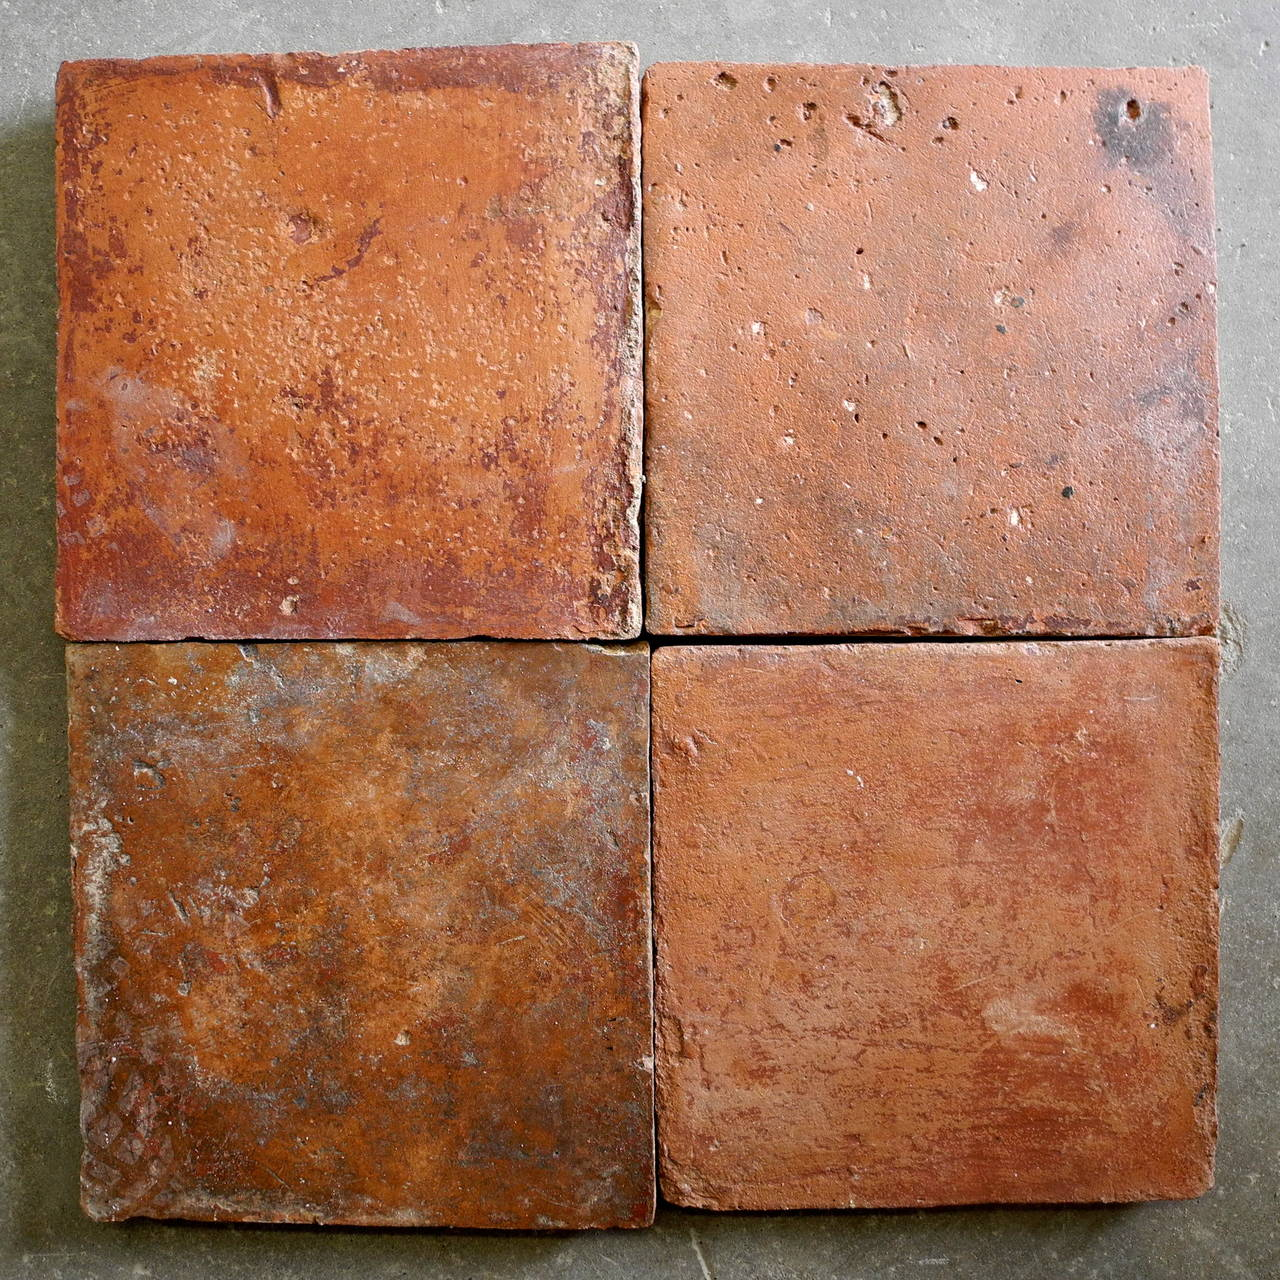 This Reclaimed Spanish Terracotta Tiles is no longer available.